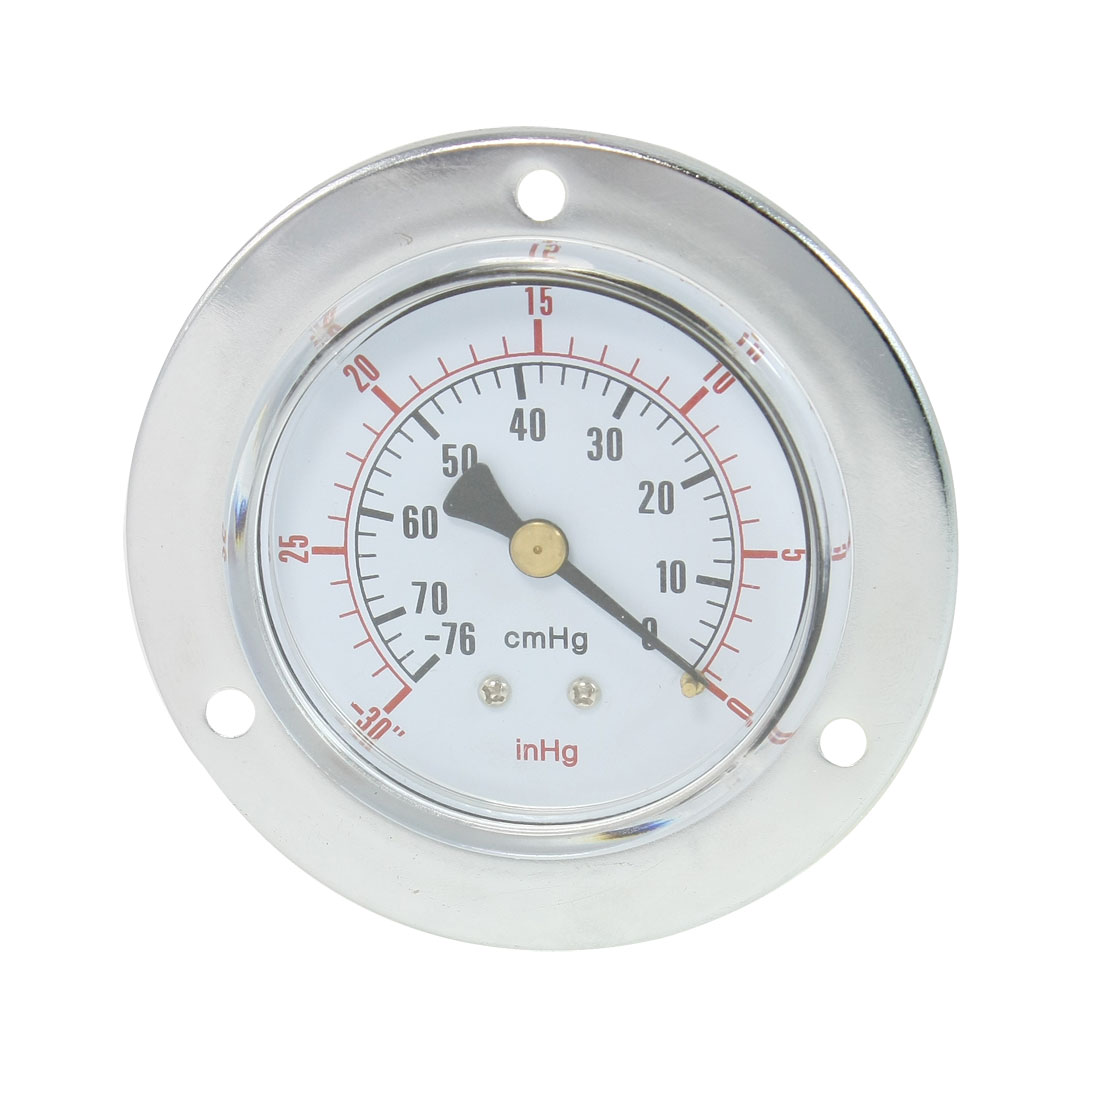 "Vertical Mount 1/4"" Water Air Pressure Vacuum Gauge -76-0 inHg"